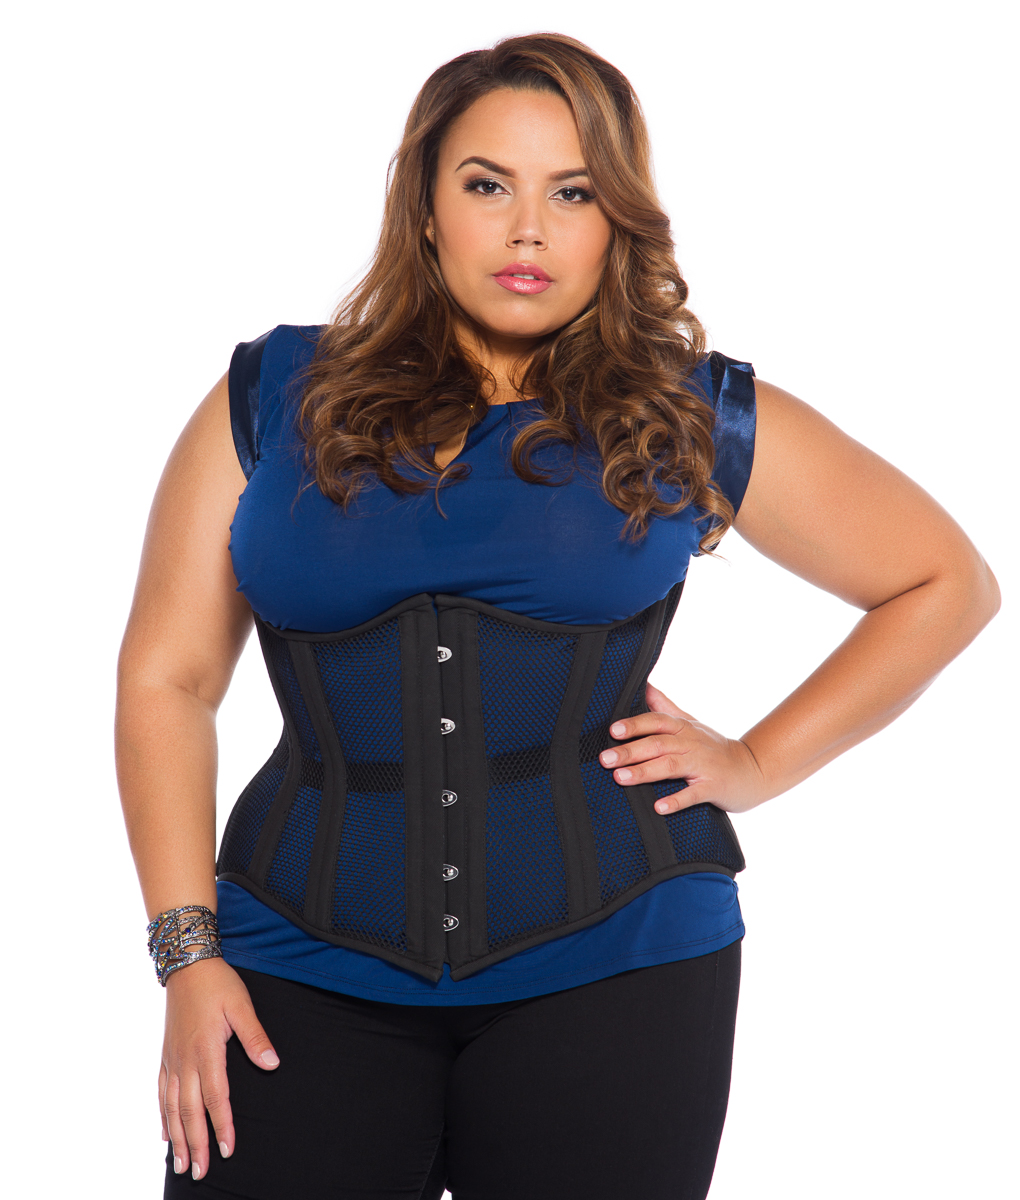 Jolie Black Mesh Plus Size Corset Steel Boned